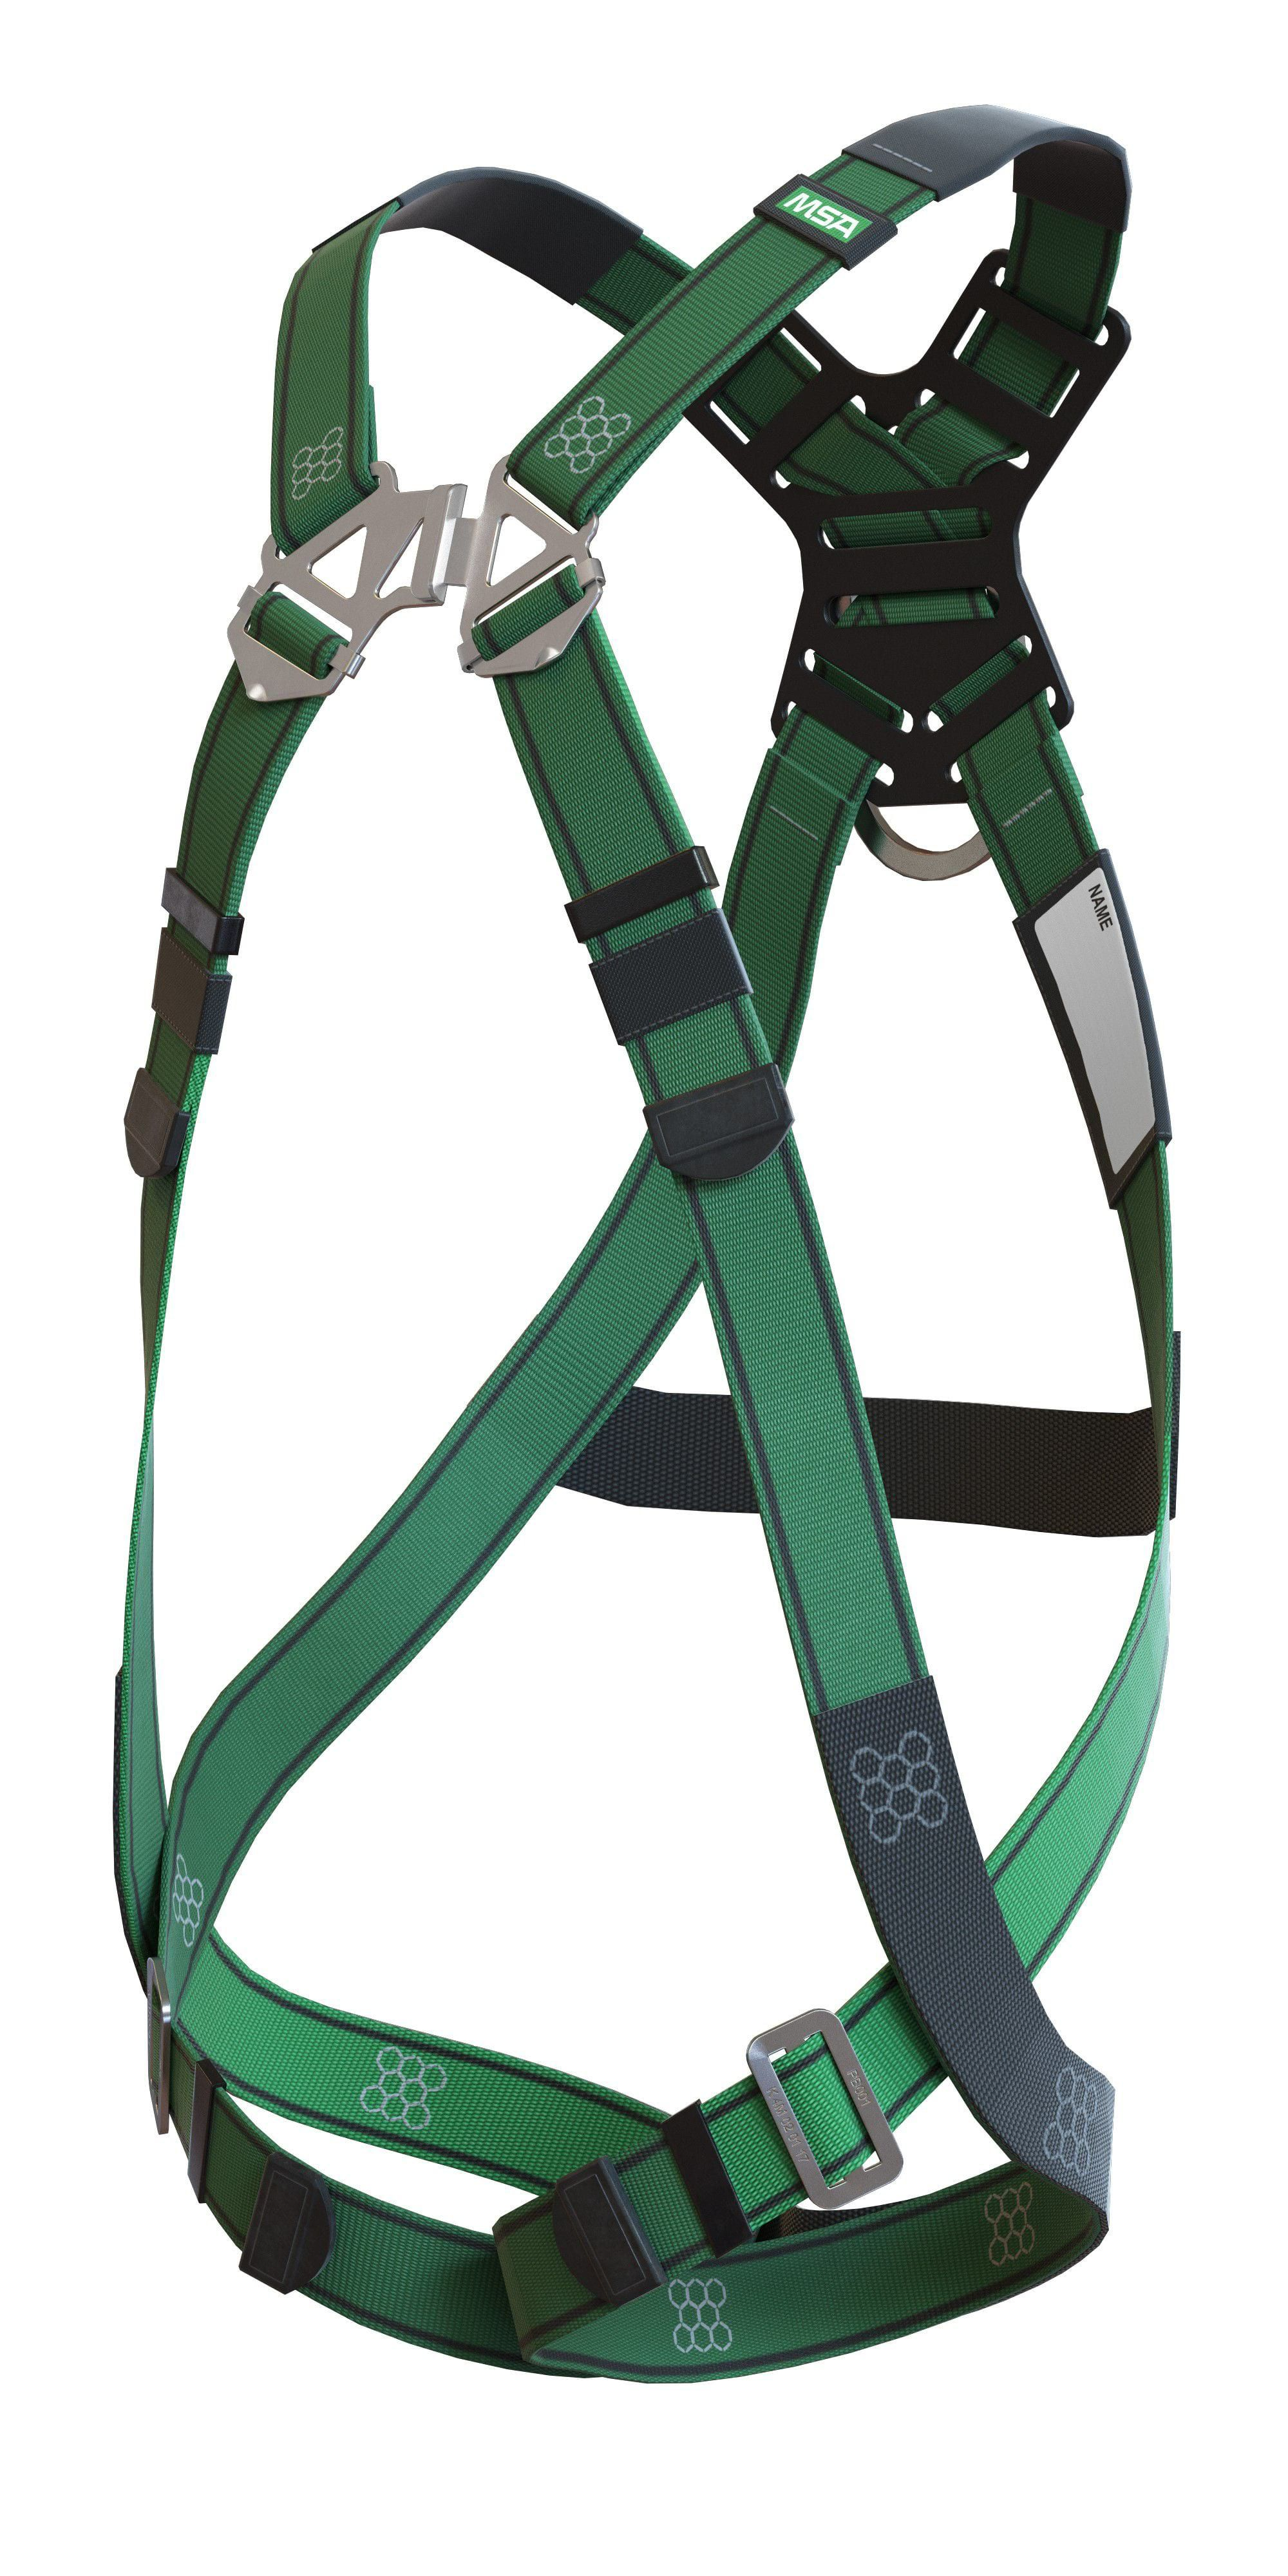 An angled view of the MSA V-FORM fall protection harness